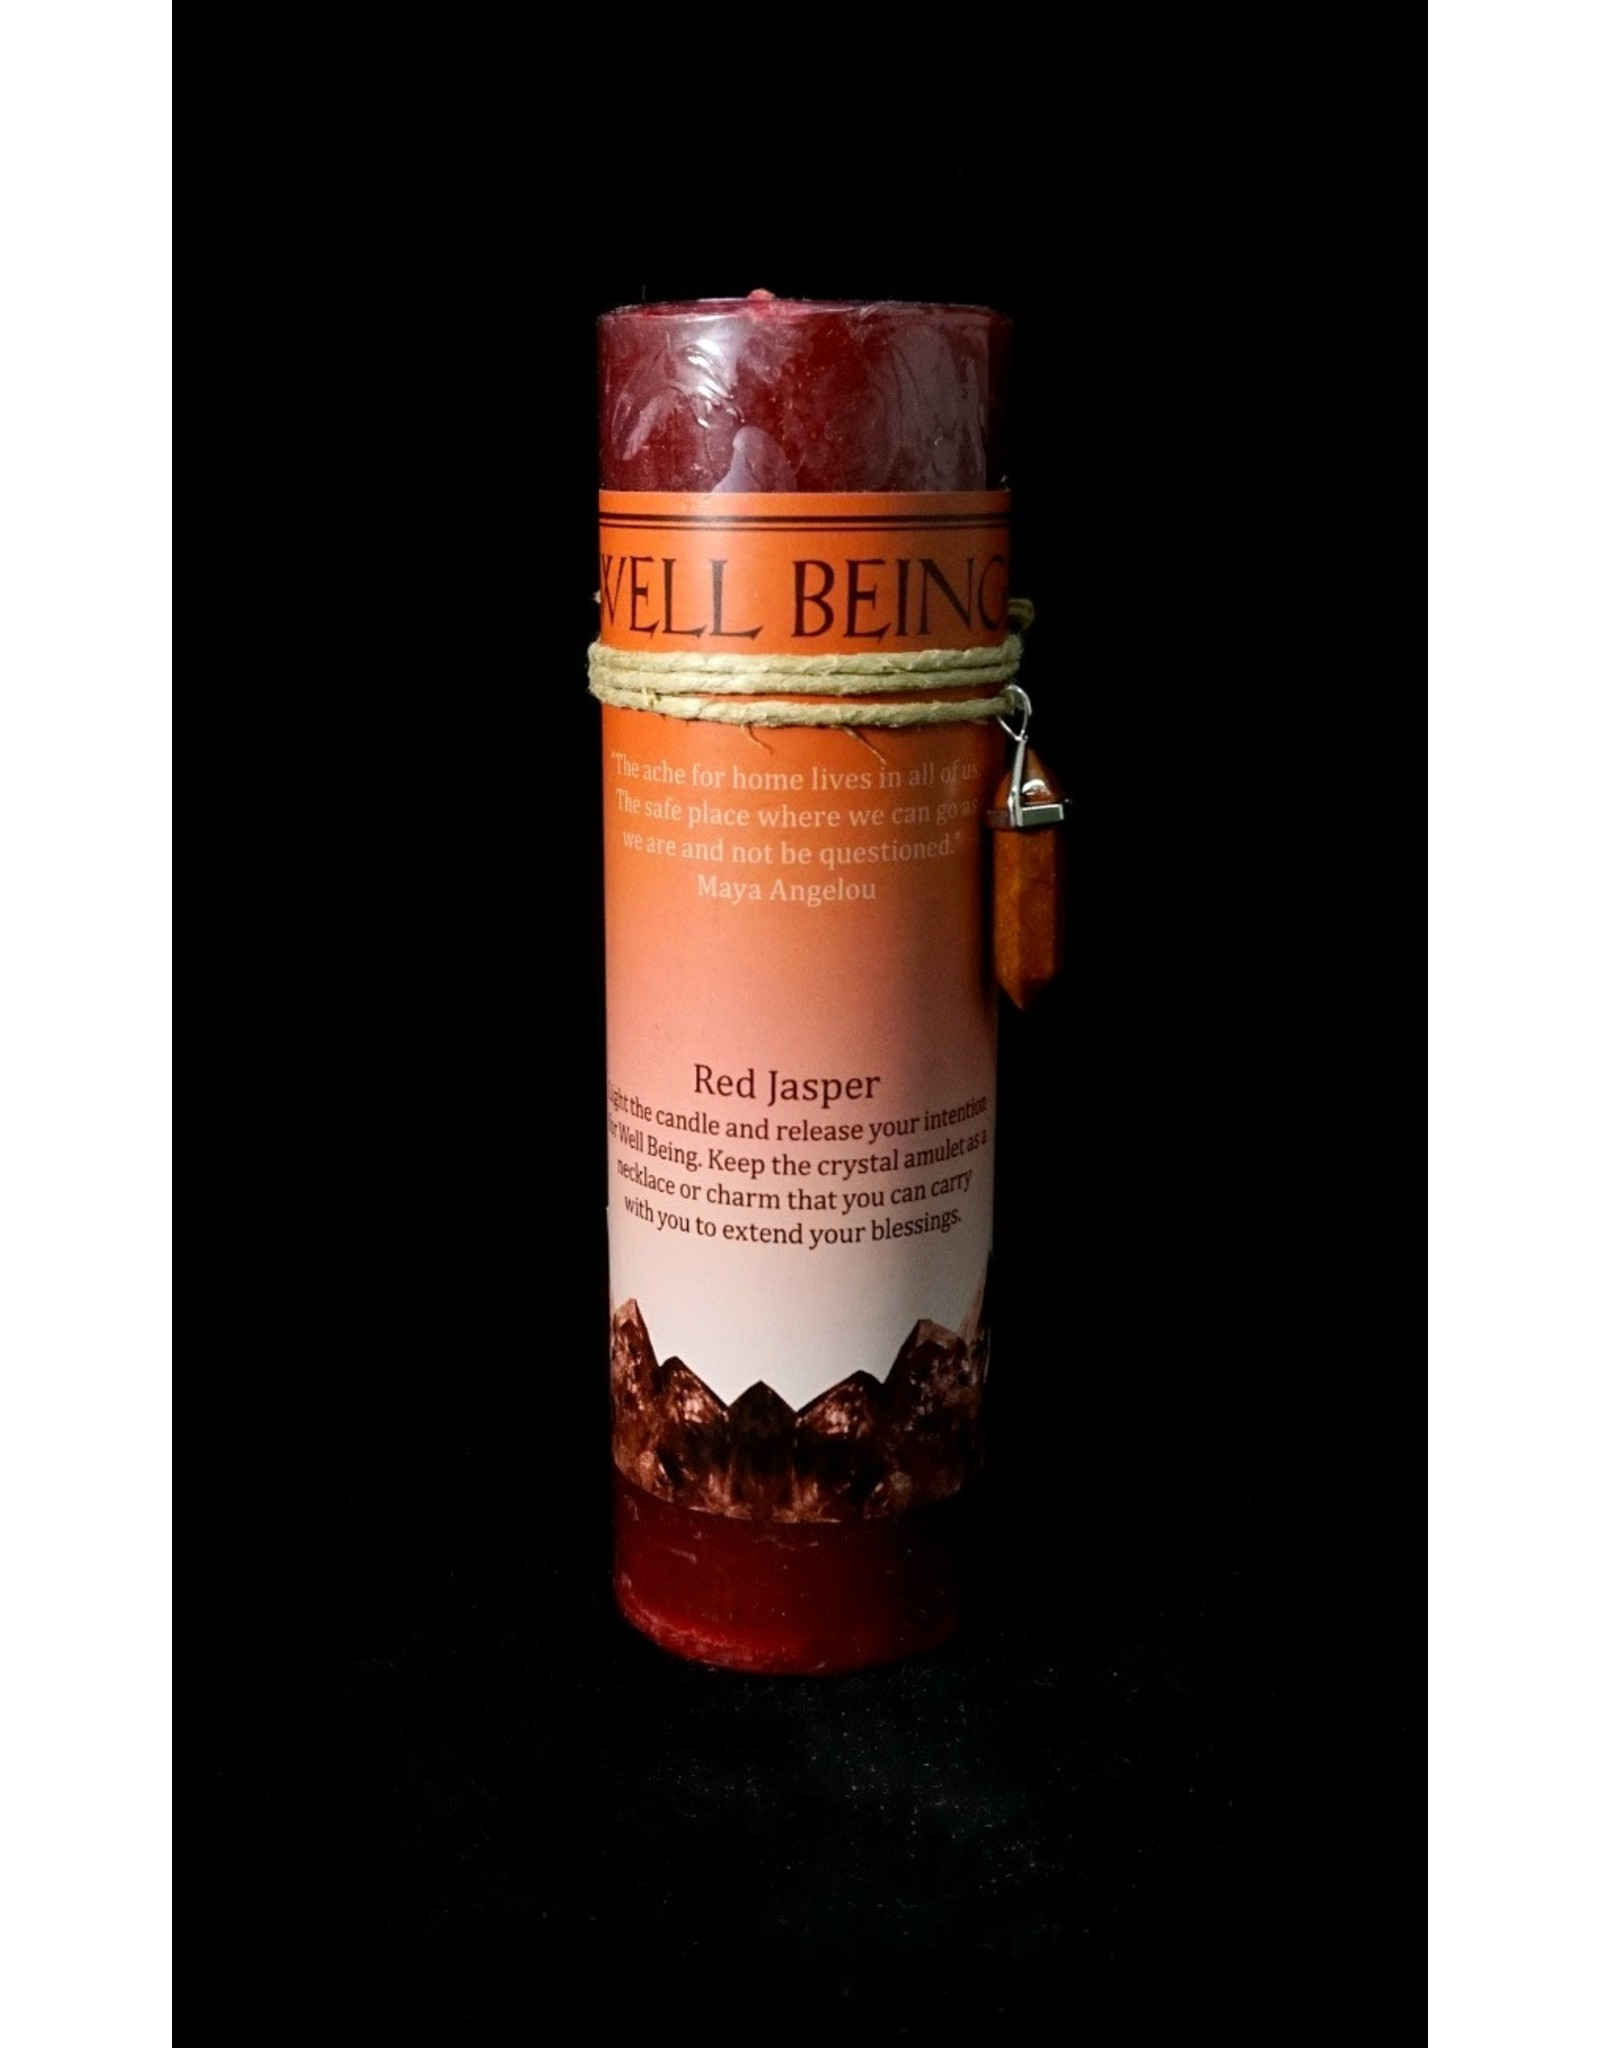 Crystal Energy Pendant Candle -  Red Jasper Well Being